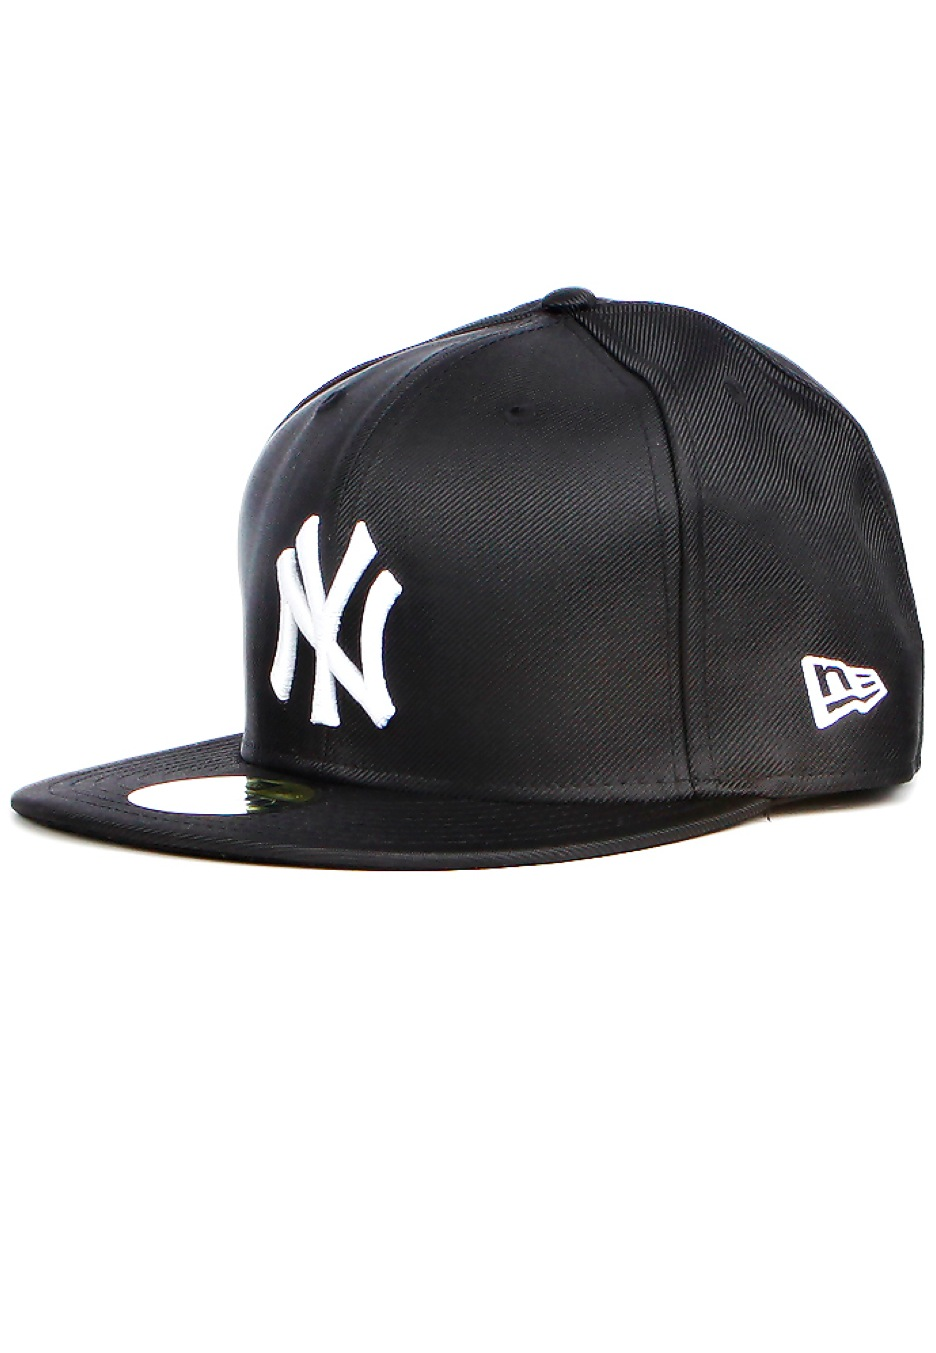 New Era - Straight Across New York Yankees Black White - Cap - Streetwear  Shop - Impericon.com Worldwide 2a9a3600046